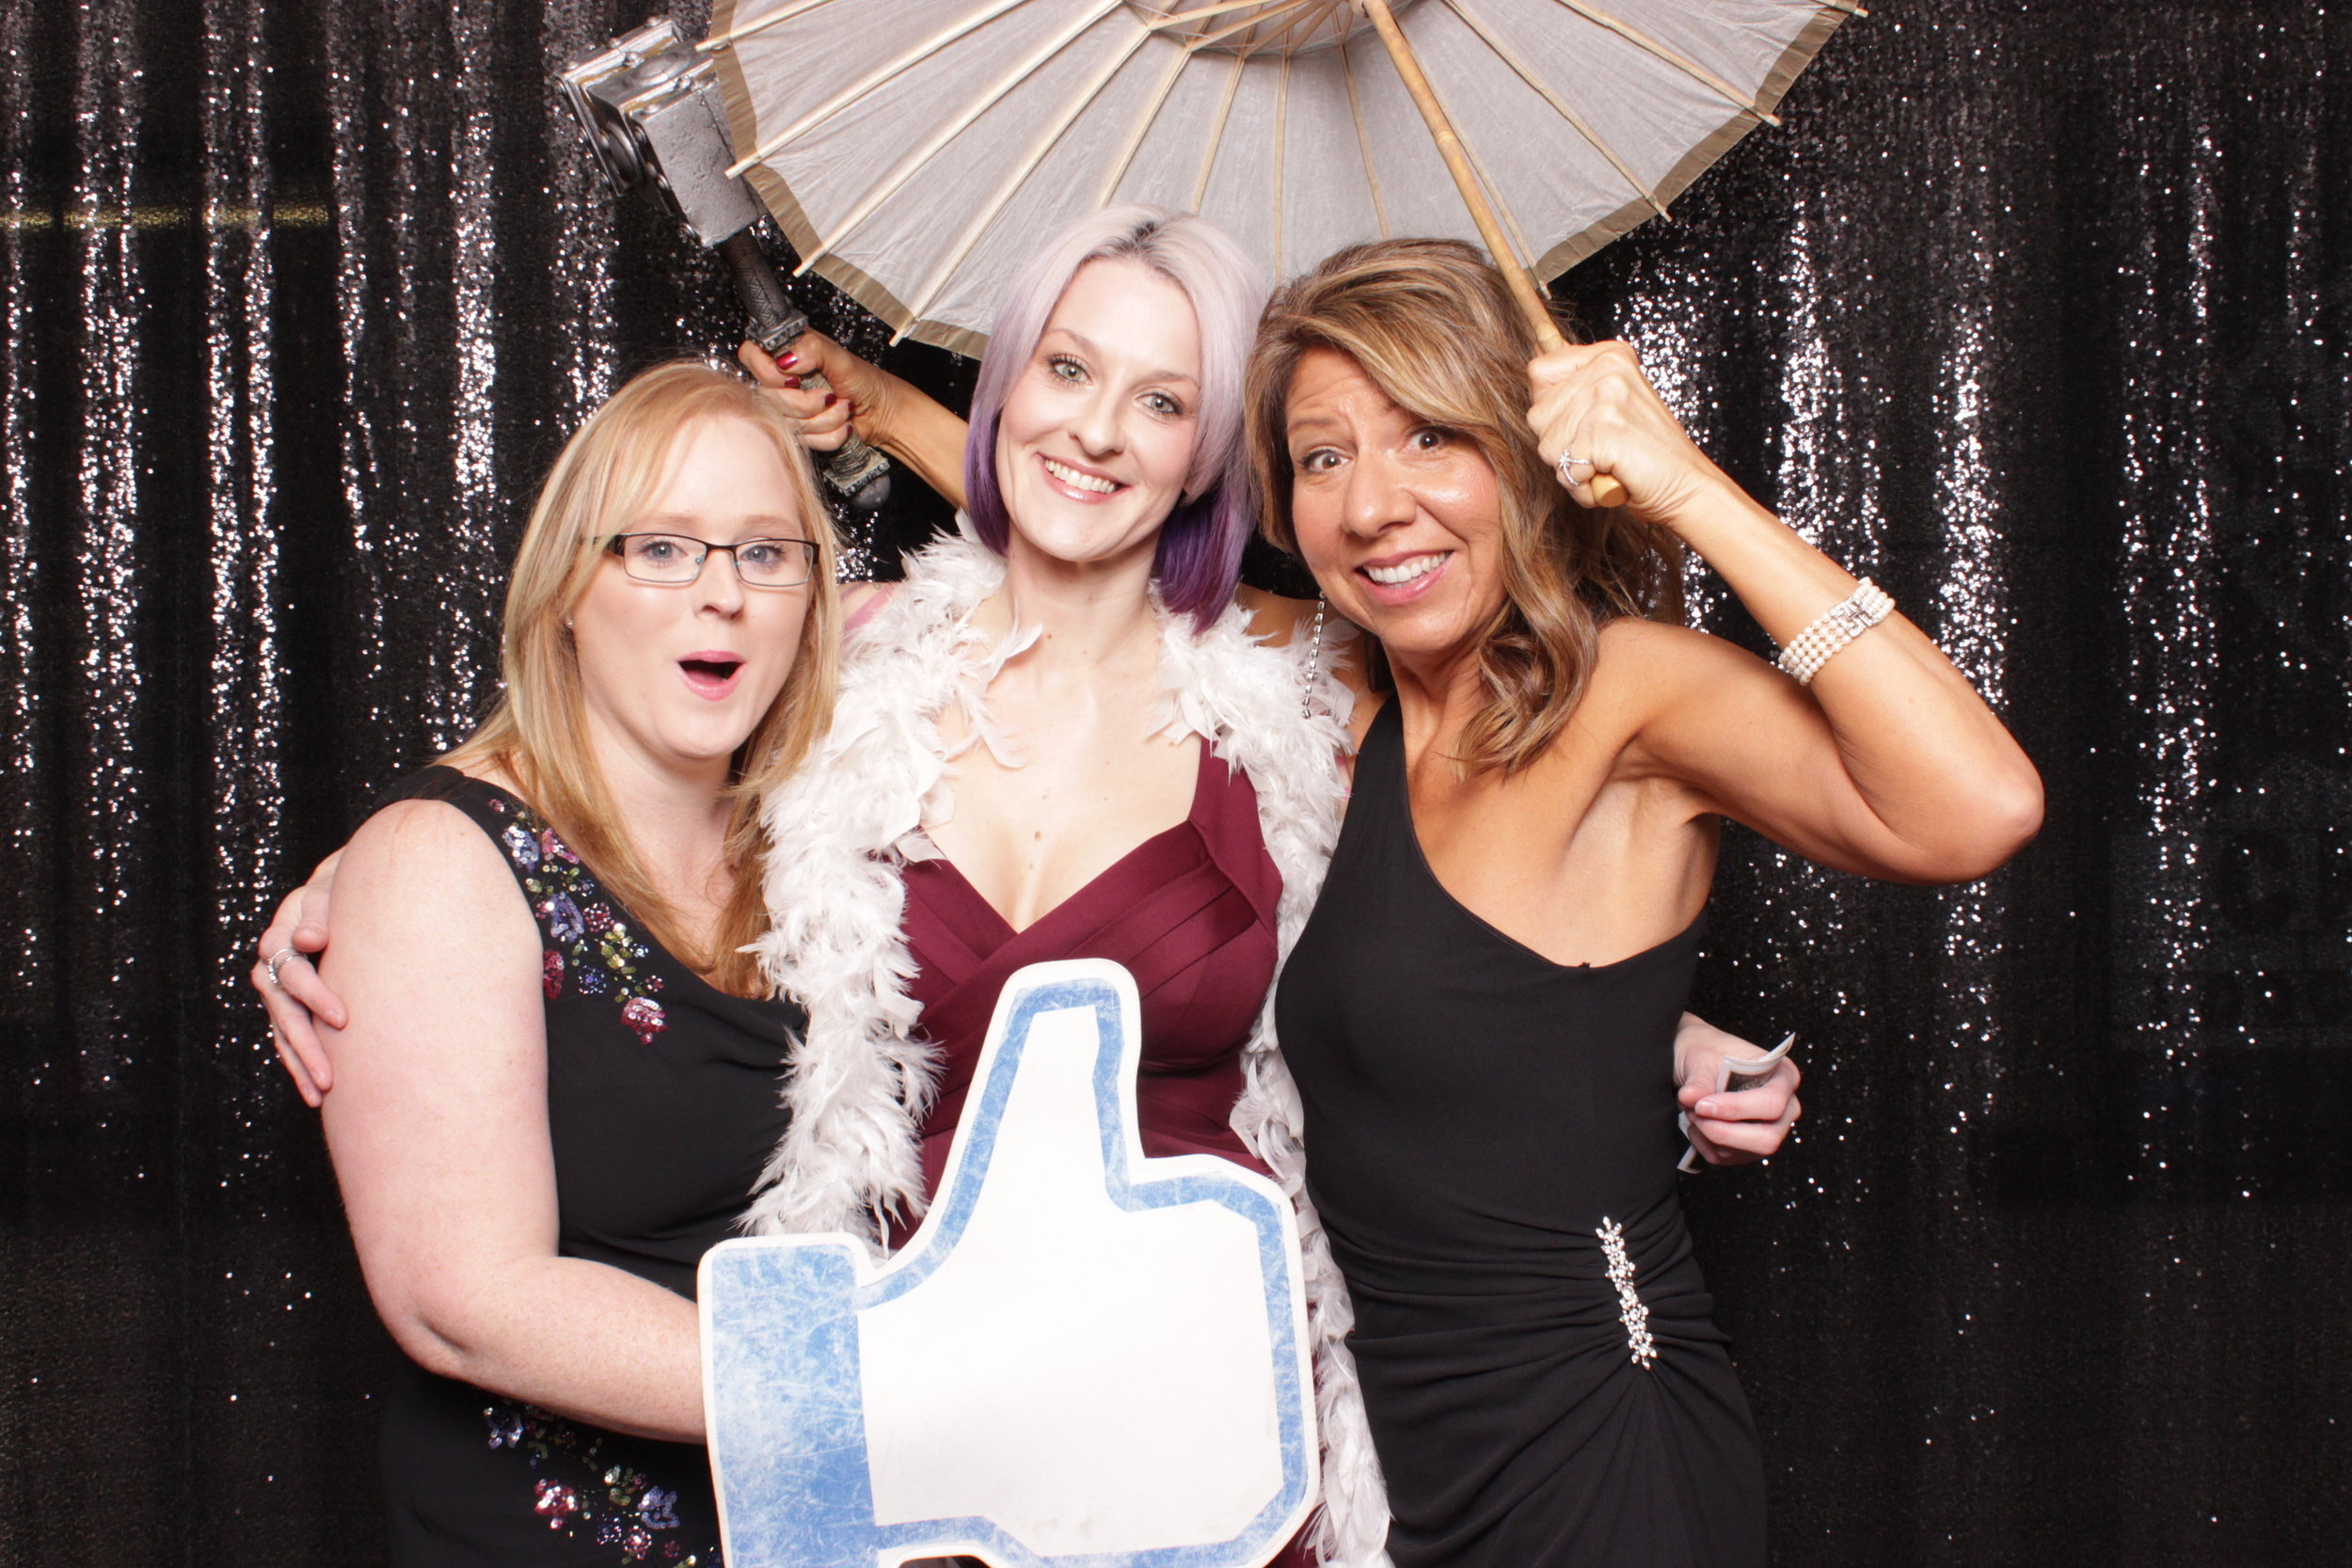 chico-awesome-trebooth-photo-booth-rental.jpg